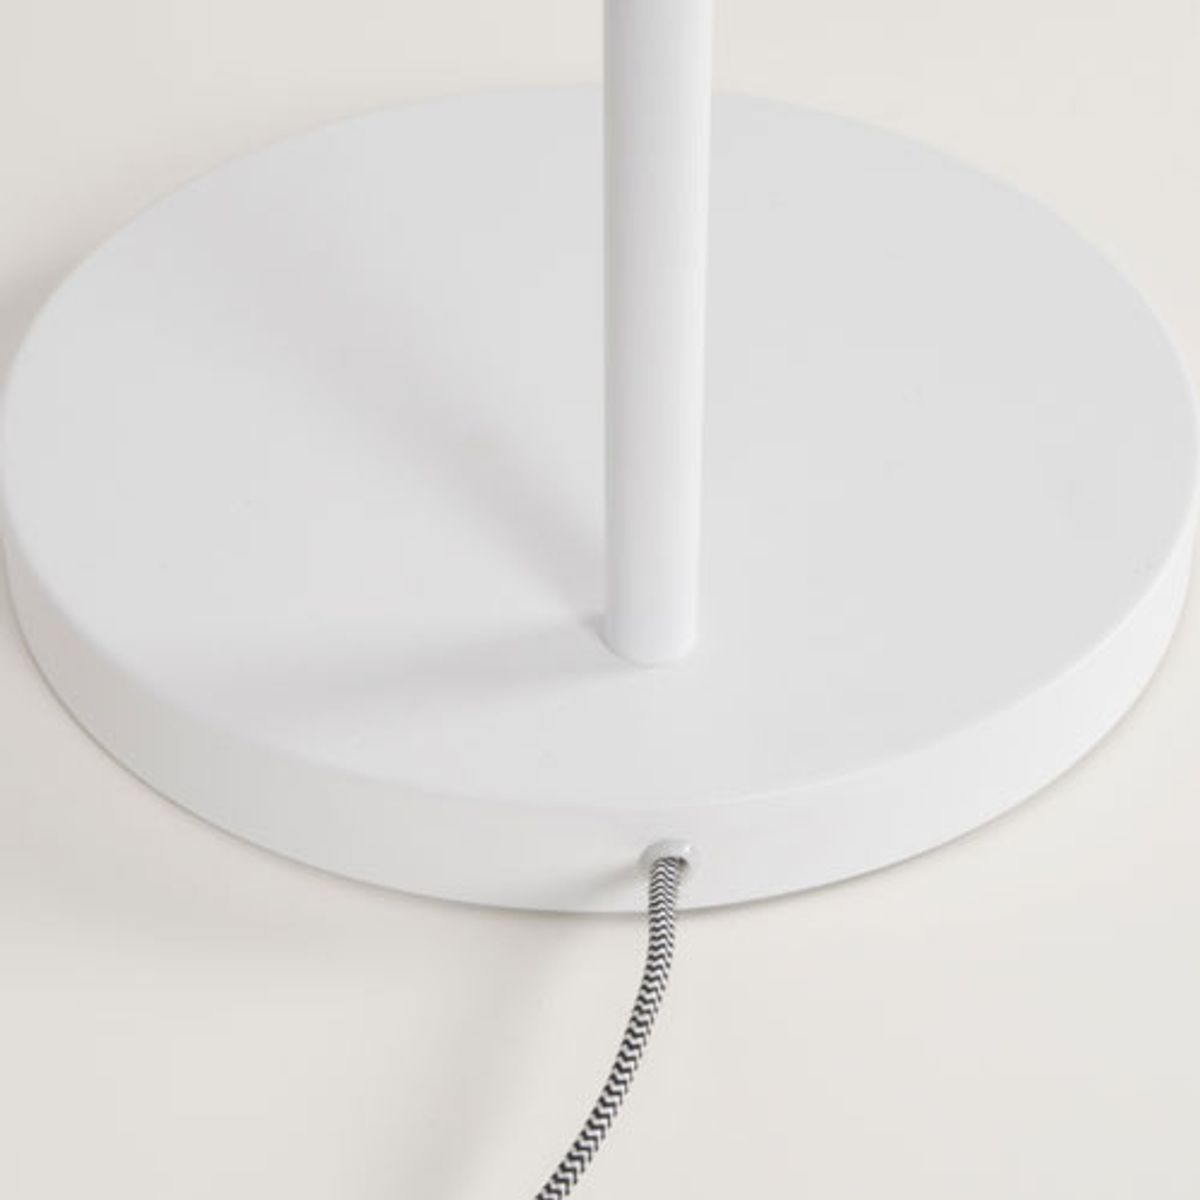 Lampadaire inclinable en métal Buckle Zuiver - blanc